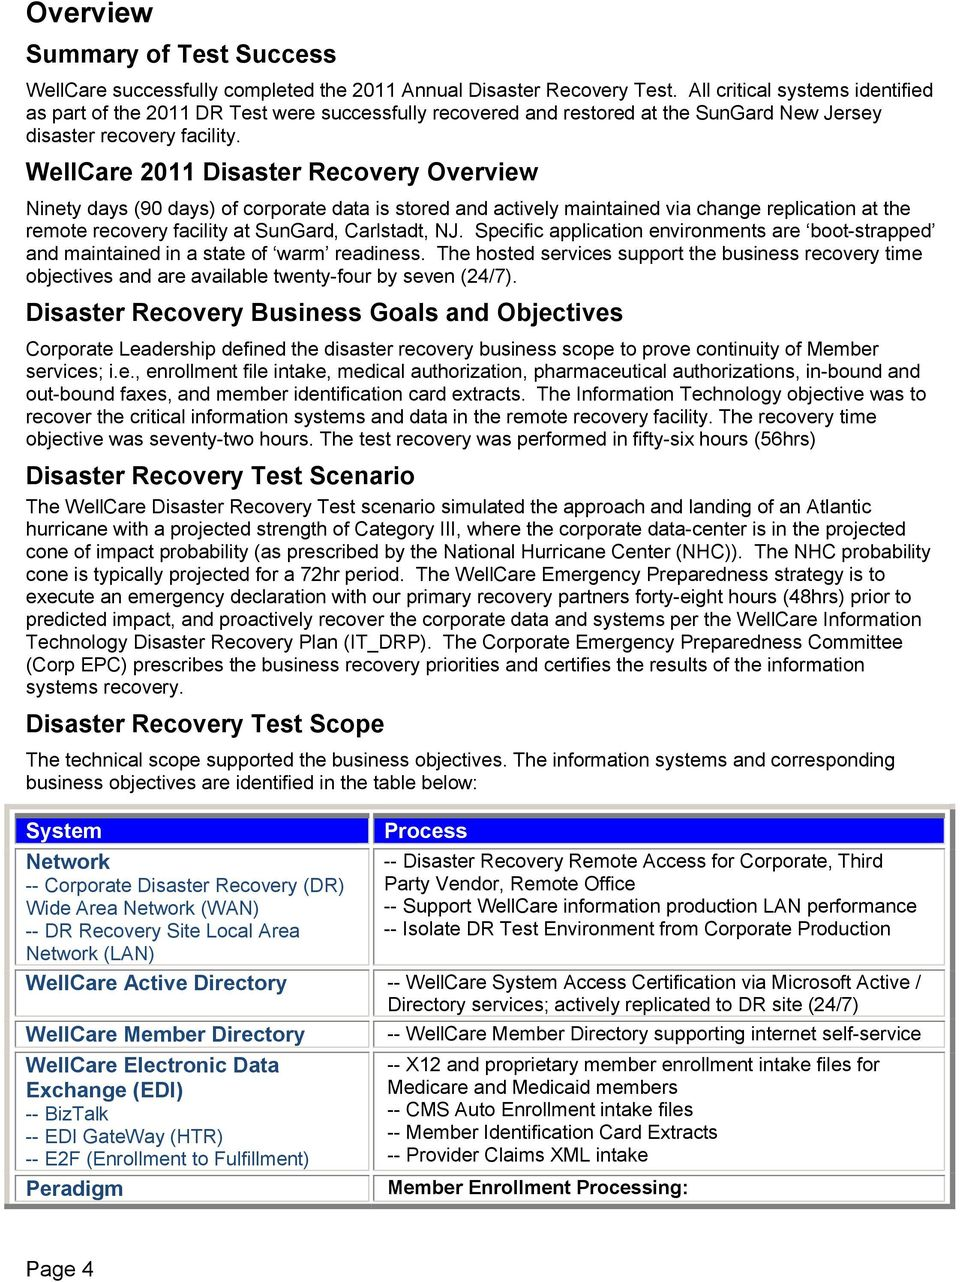 WellCare 2011 Disaster Recovery Overview Ninety days (90 days) of corporate data is stored and actively maintained via change replication at the remote recovery facility at SunGard, Carlstadt, NJ.